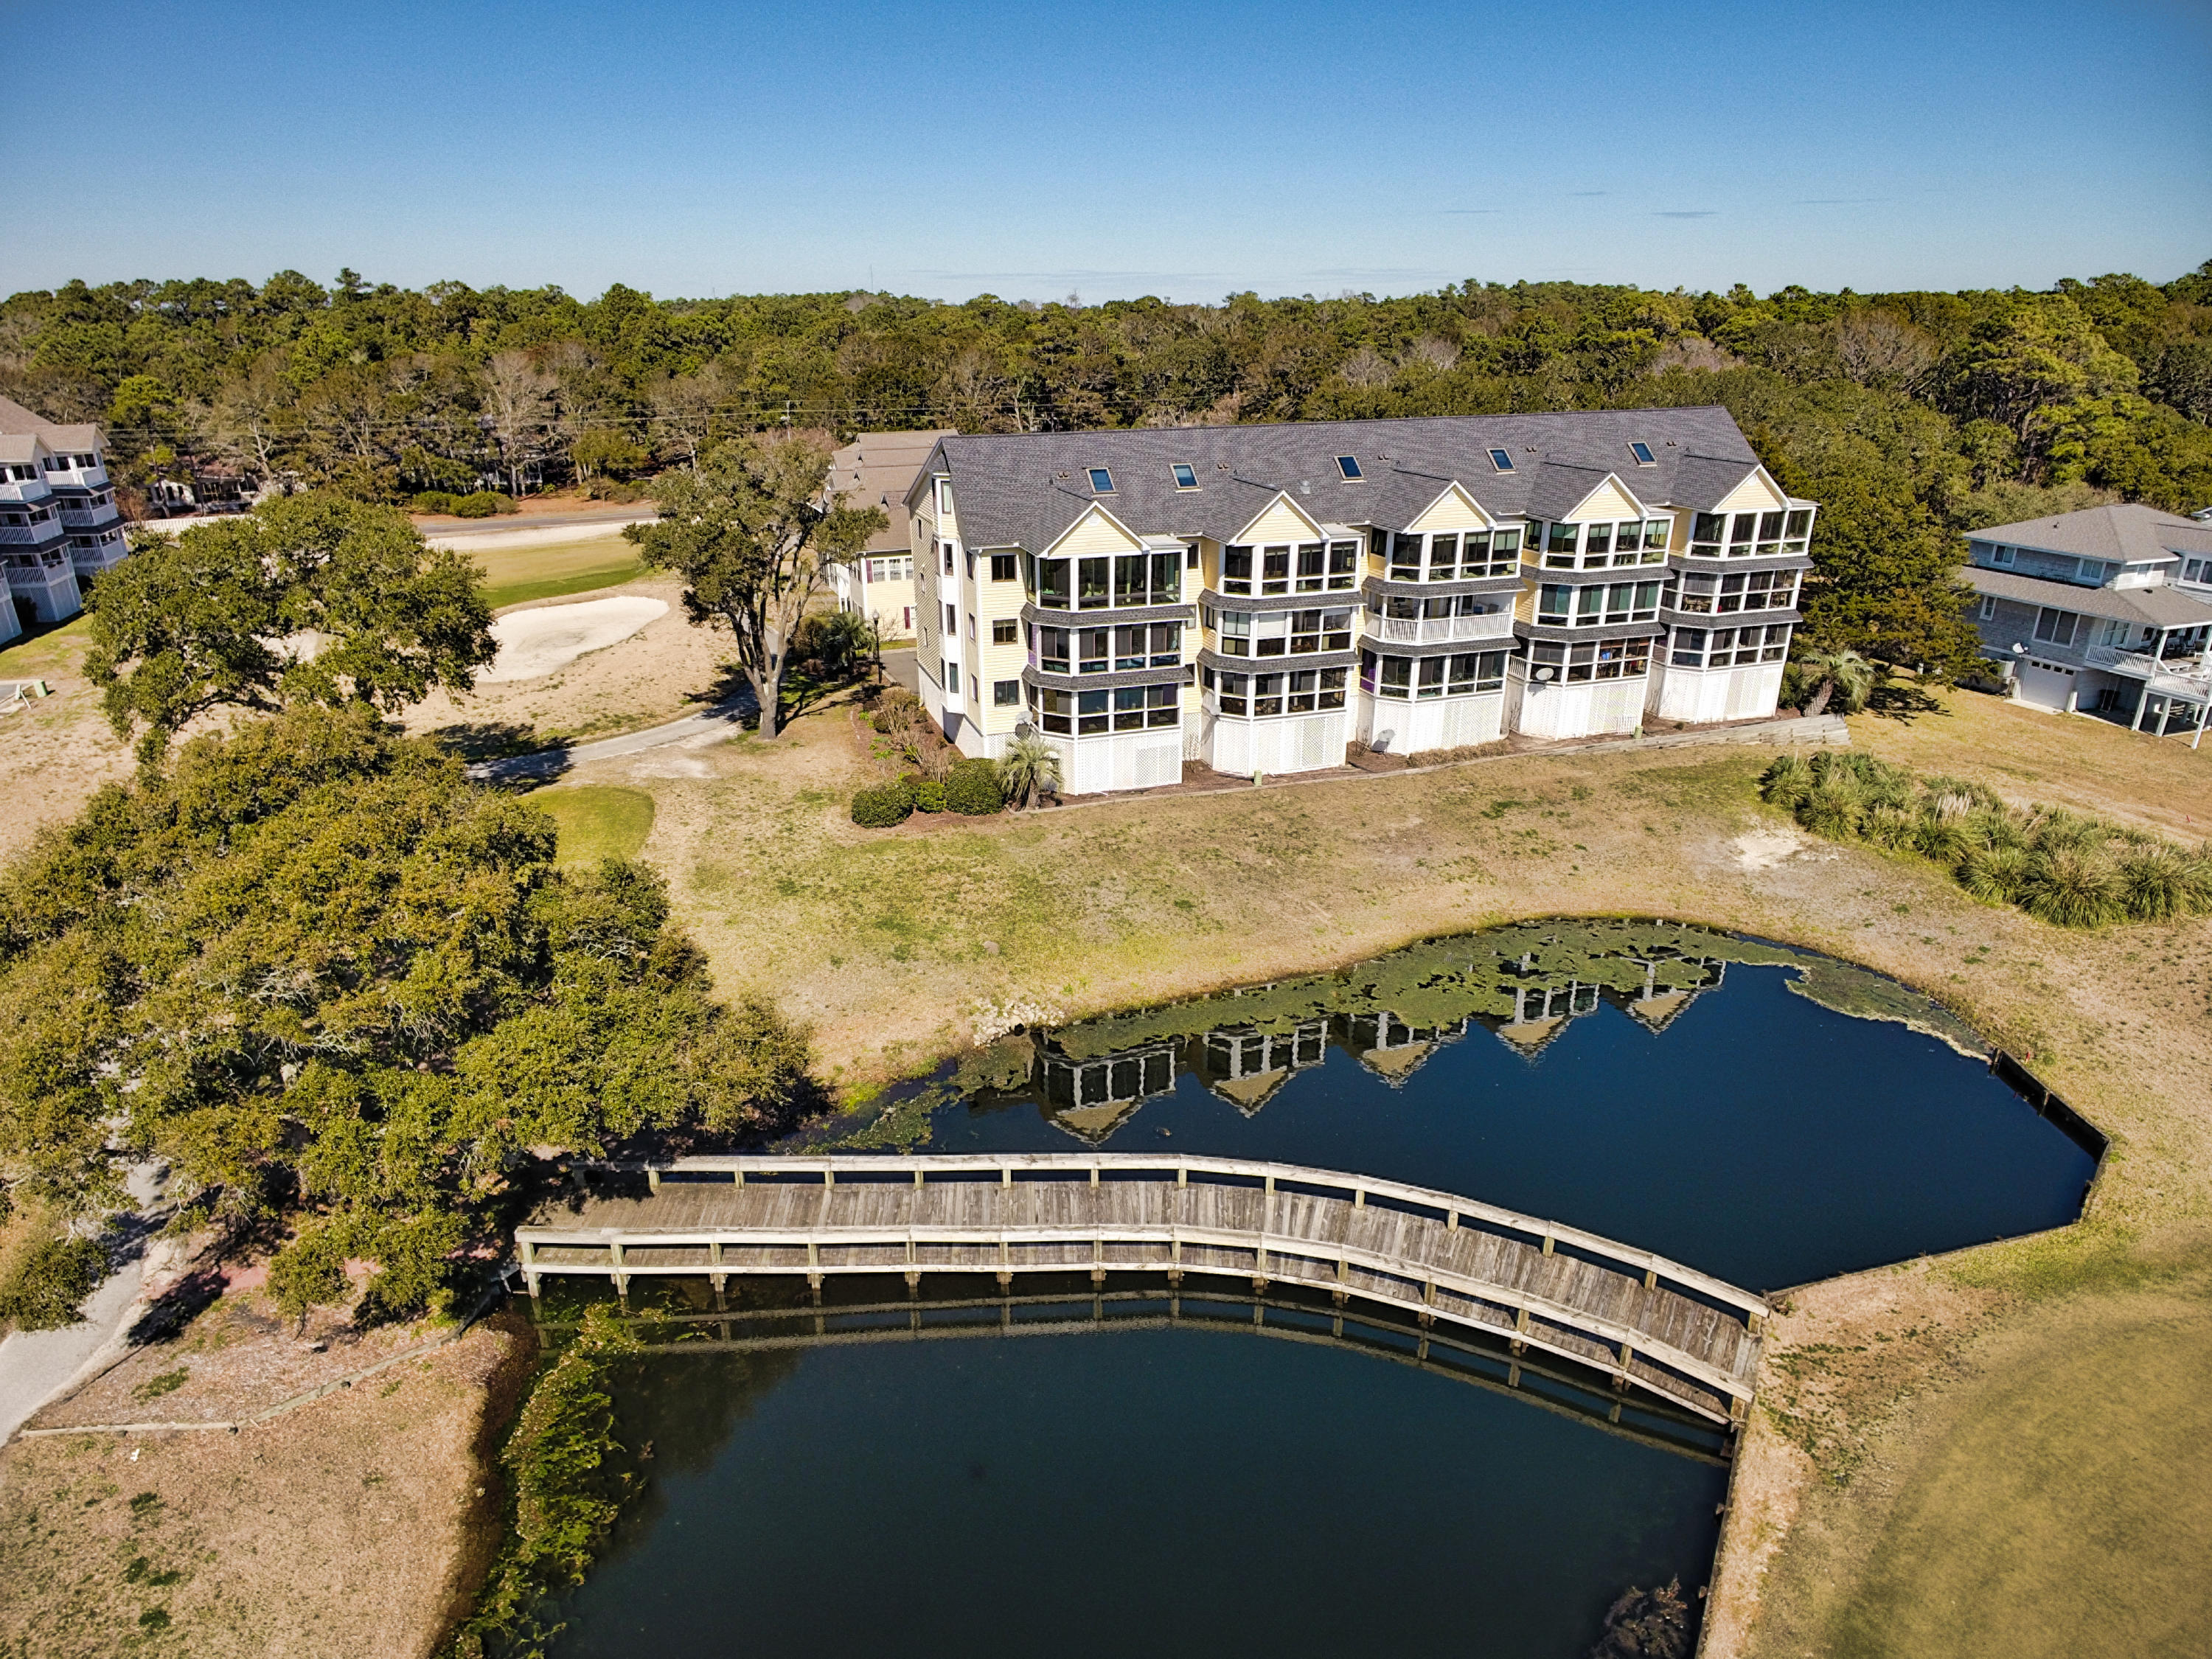 Check out this beautiful spectacular waterfront 2 bedroom 2 bath condo with enclosed sunroom, completely handicapped accessible including shower and bathroom.  This condo is in Inlet Wacche in Brick Landing Plantation in Ocean Isle Beach, NC Views are of the Brick landing fairway # 1 and Green plus the Intracoastal Waterway, and you can see the Shallotte Inlet and Ocean Isle Beach from sunroom.  Spectacular panoramic views. Elevator to second floor makes this a very special condo. Small pool outside your front door and large pool complex inside gates of Brick landing. Beautiful clubhouse. you can walk to for lunch and dinner. Wonderful 18 hole golf course, all shopping, grocery drug stores, retail shopping, nd banking all within 10 minutes away. Ocean Isle Beach, the prettiest family beach in the southeast is only 10 minutes away. New Wildlife boat ramp 5 min. away. Ocean Isle Beach Marina 10 minutes away.  This lovely condo comes partially furnished with sofa, TV's TV cabinet, dining room table with 6 chairs, leather recliner on sunporch, king size bed, one twin bed, washer-dryer, all kitchen appliances. . This beauty will sell quickly,, so call today for an appointment to preview. Never a rental. This special condo has a 12 month Home Warranty that conveys to Buyer at closing, which covers HVAC, Hot Water Heater, all plumbing, all electrical, all built in appliances and refrigerator plus washer & dryer Always used as a vacation get-a-way.  Waterfront Views are panoramic Only 15 units in this complex.